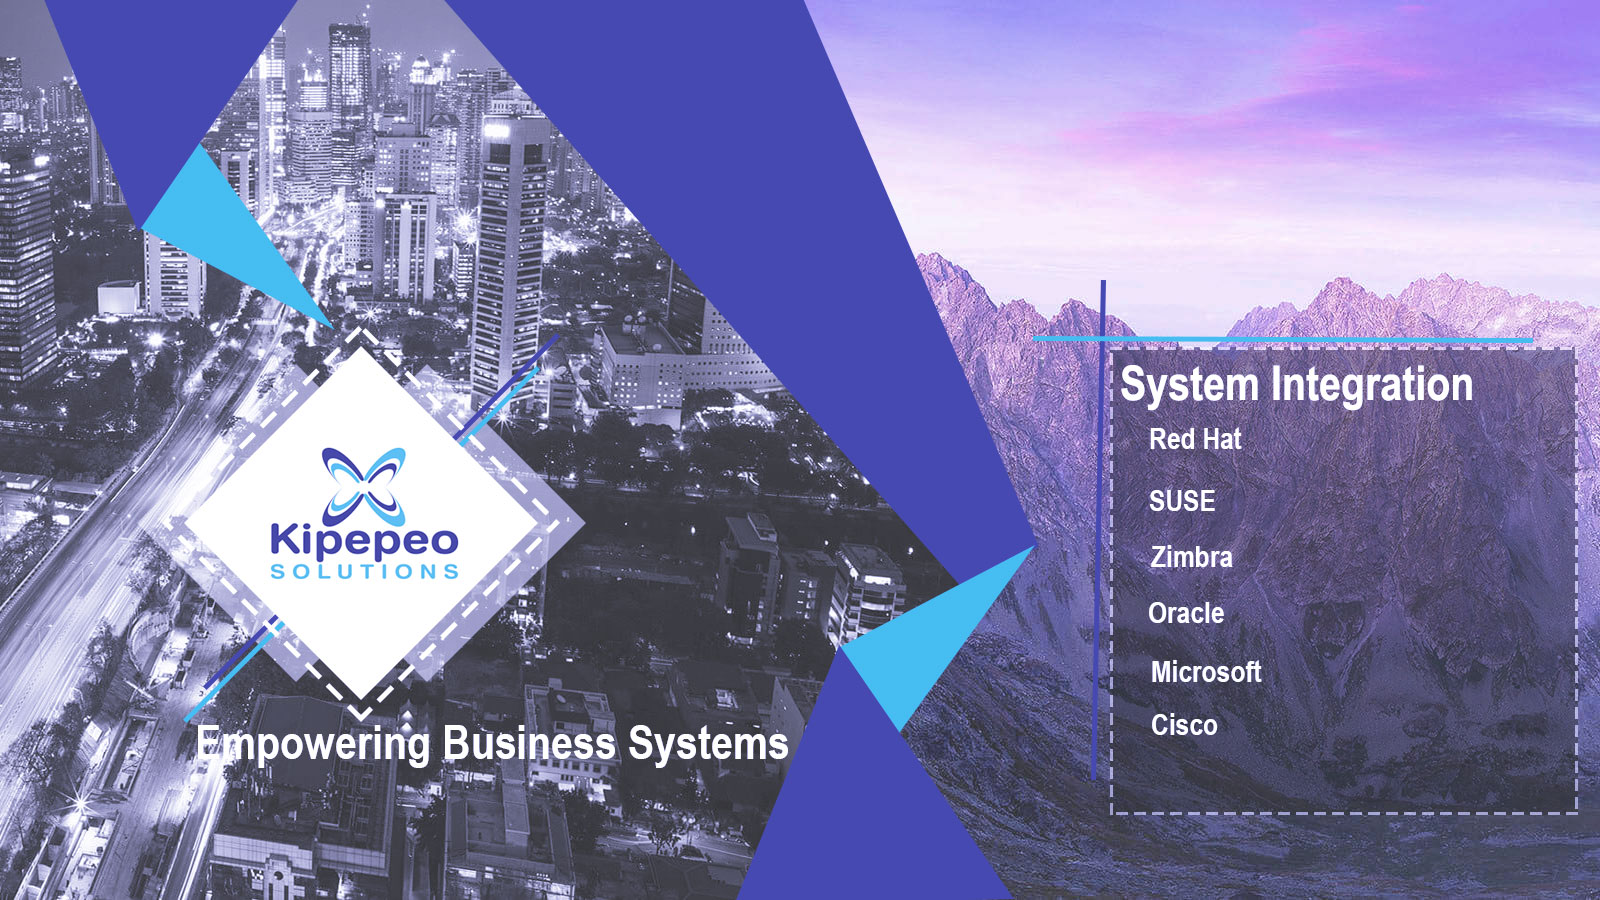 Kipepeo Solutions System Integration